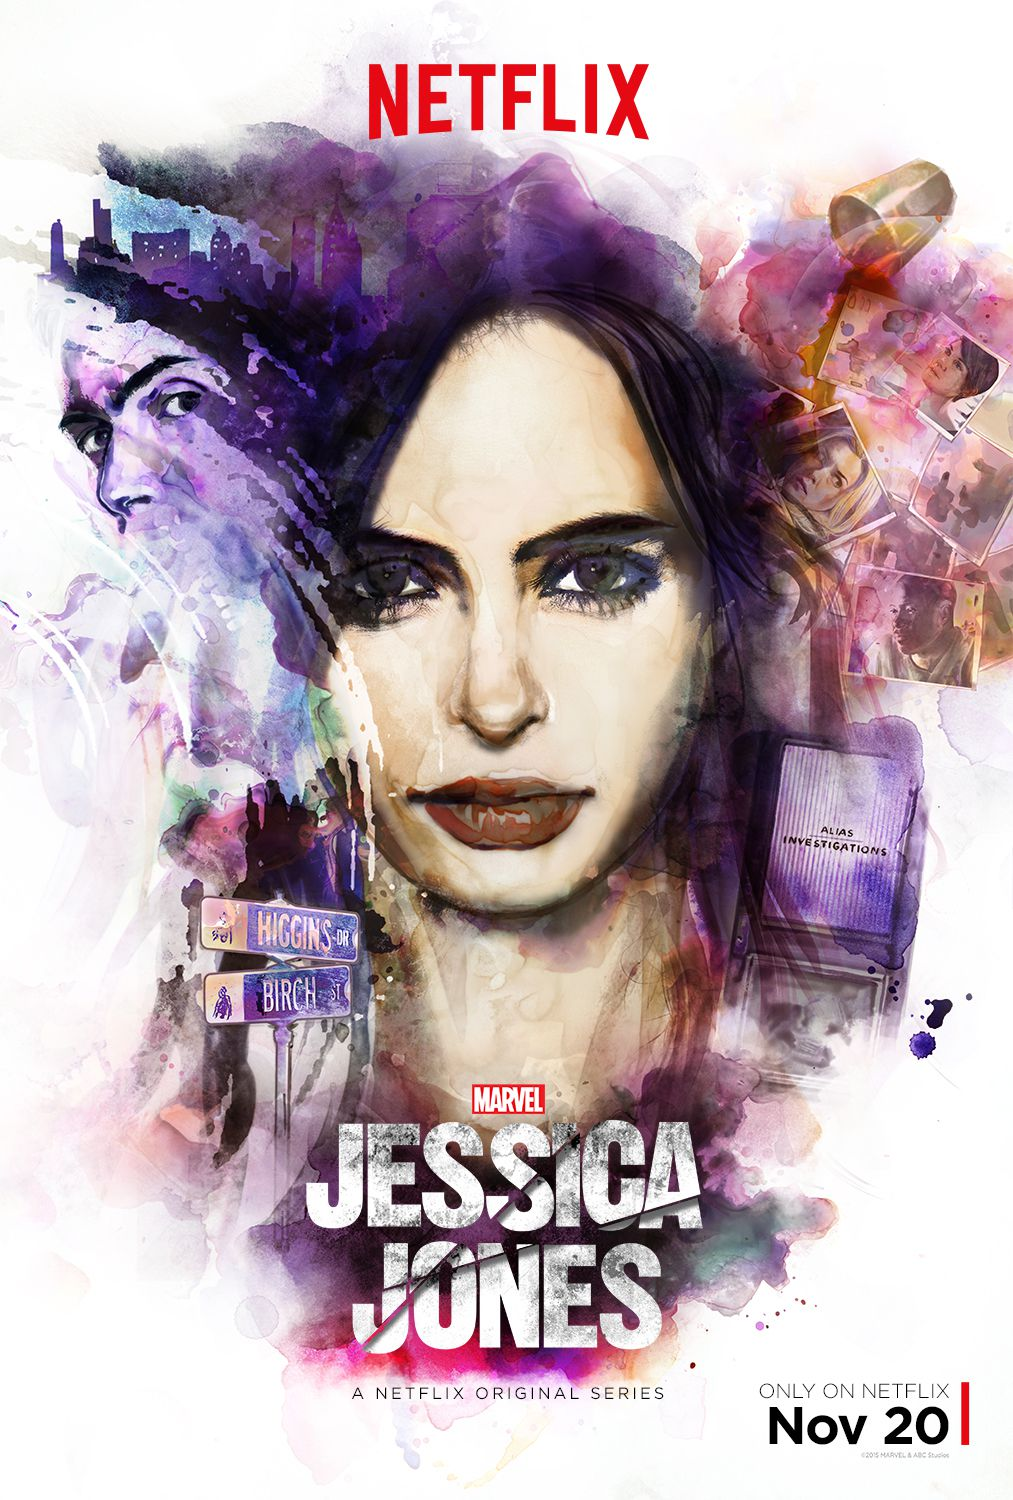 Voir Film Marvel's Jessica Jones - Série (2015) streaming VF gratuit complet